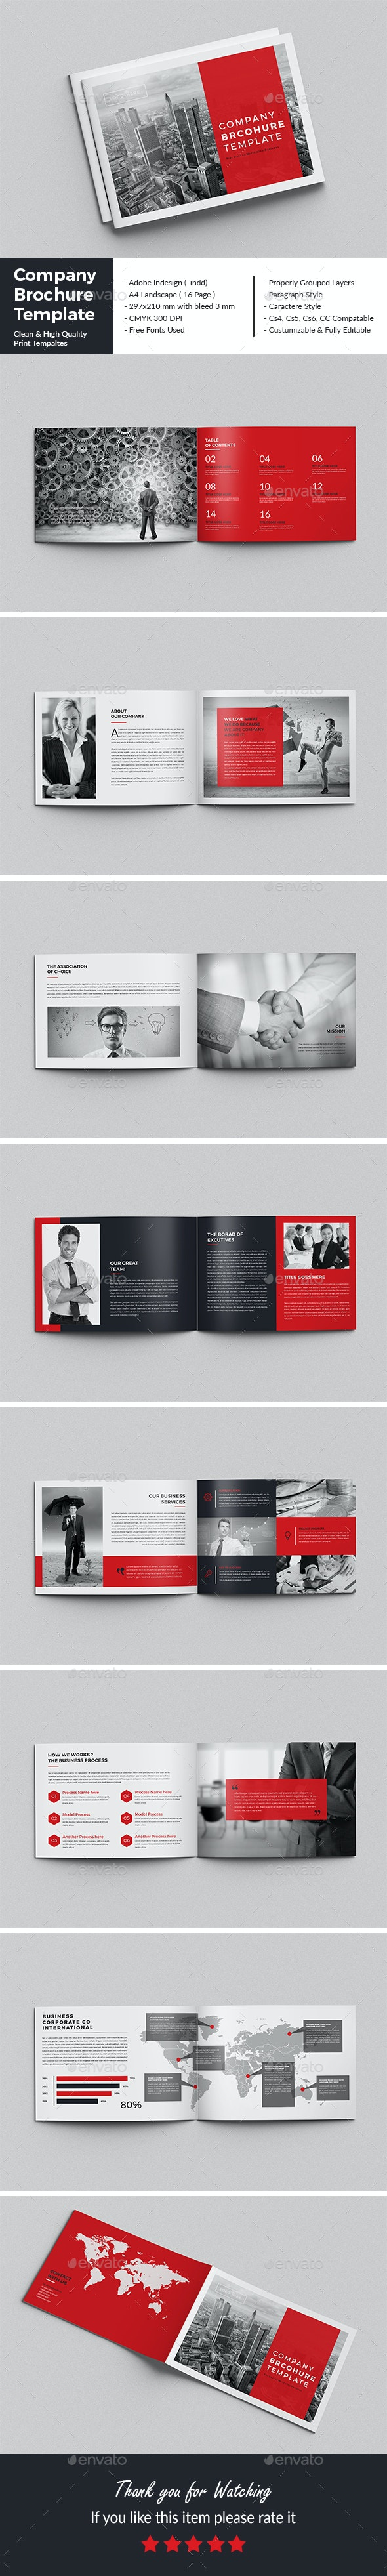 Company Brochure Template - Corporate Brochures